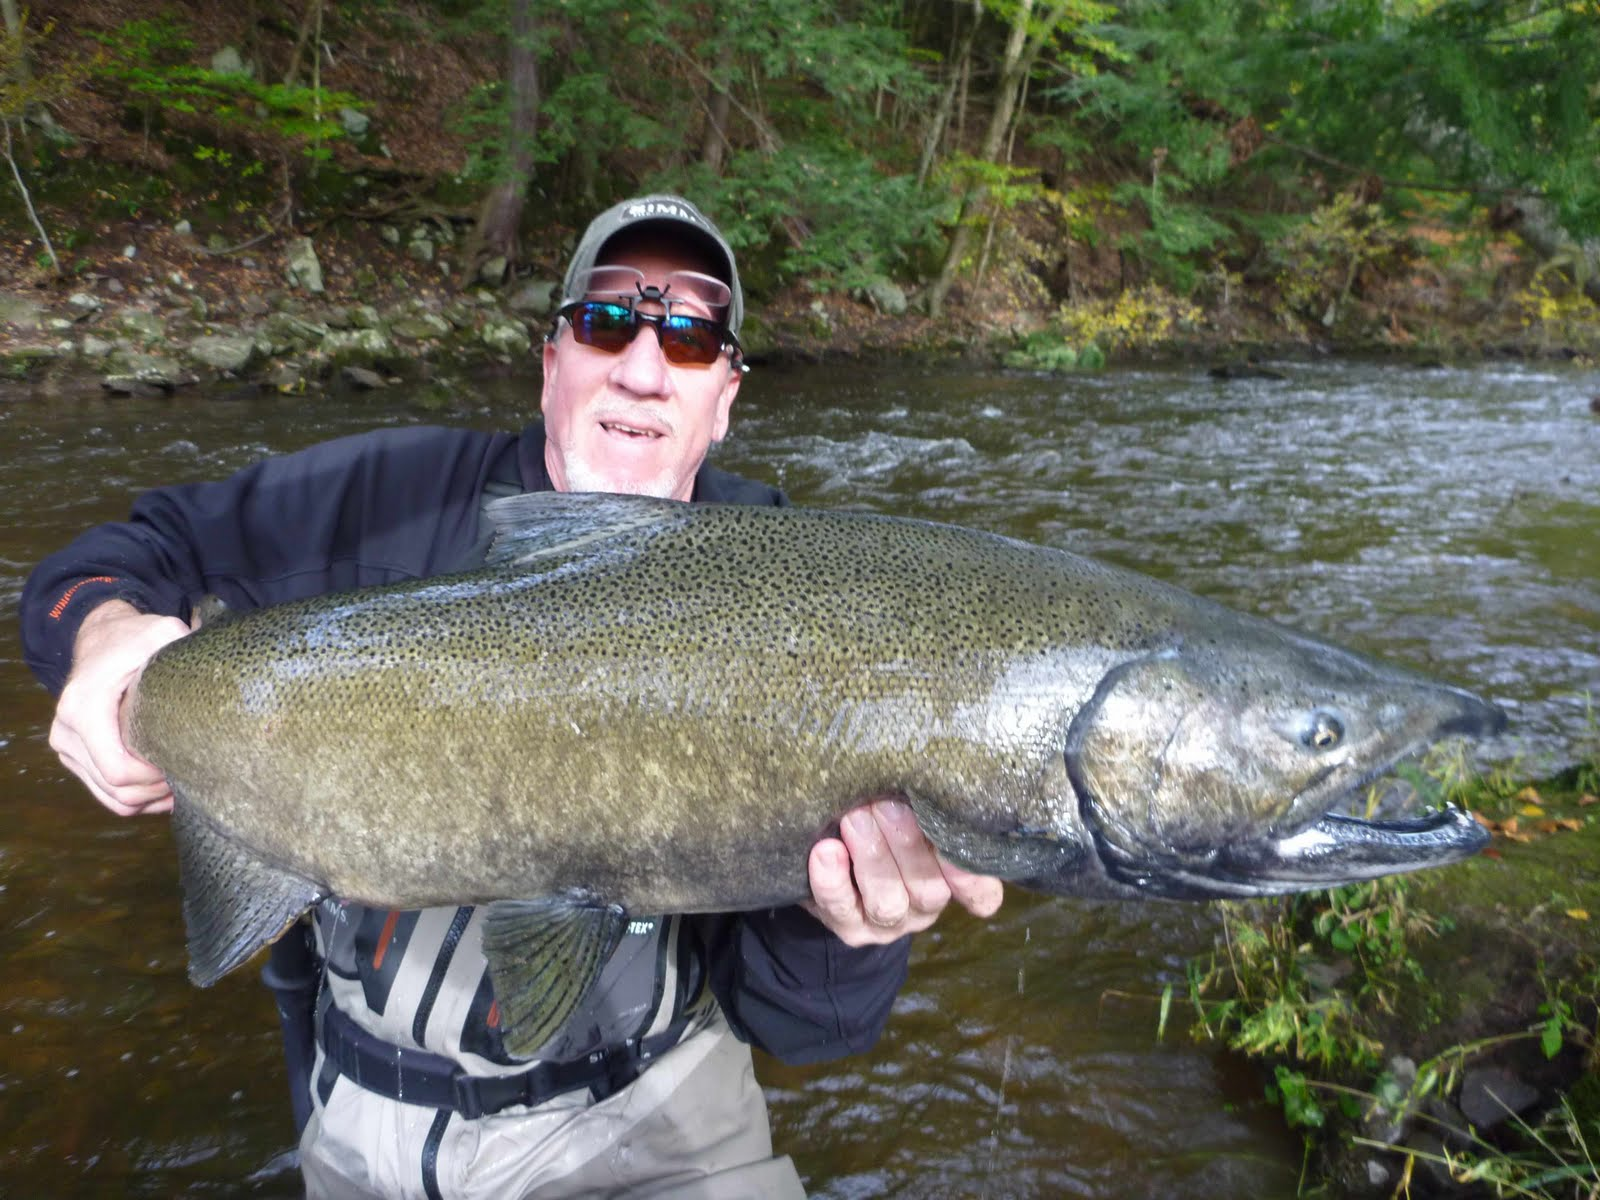 Salmon country guide october 13 back in pulaski ny and for Salmon fishing pulaski ny